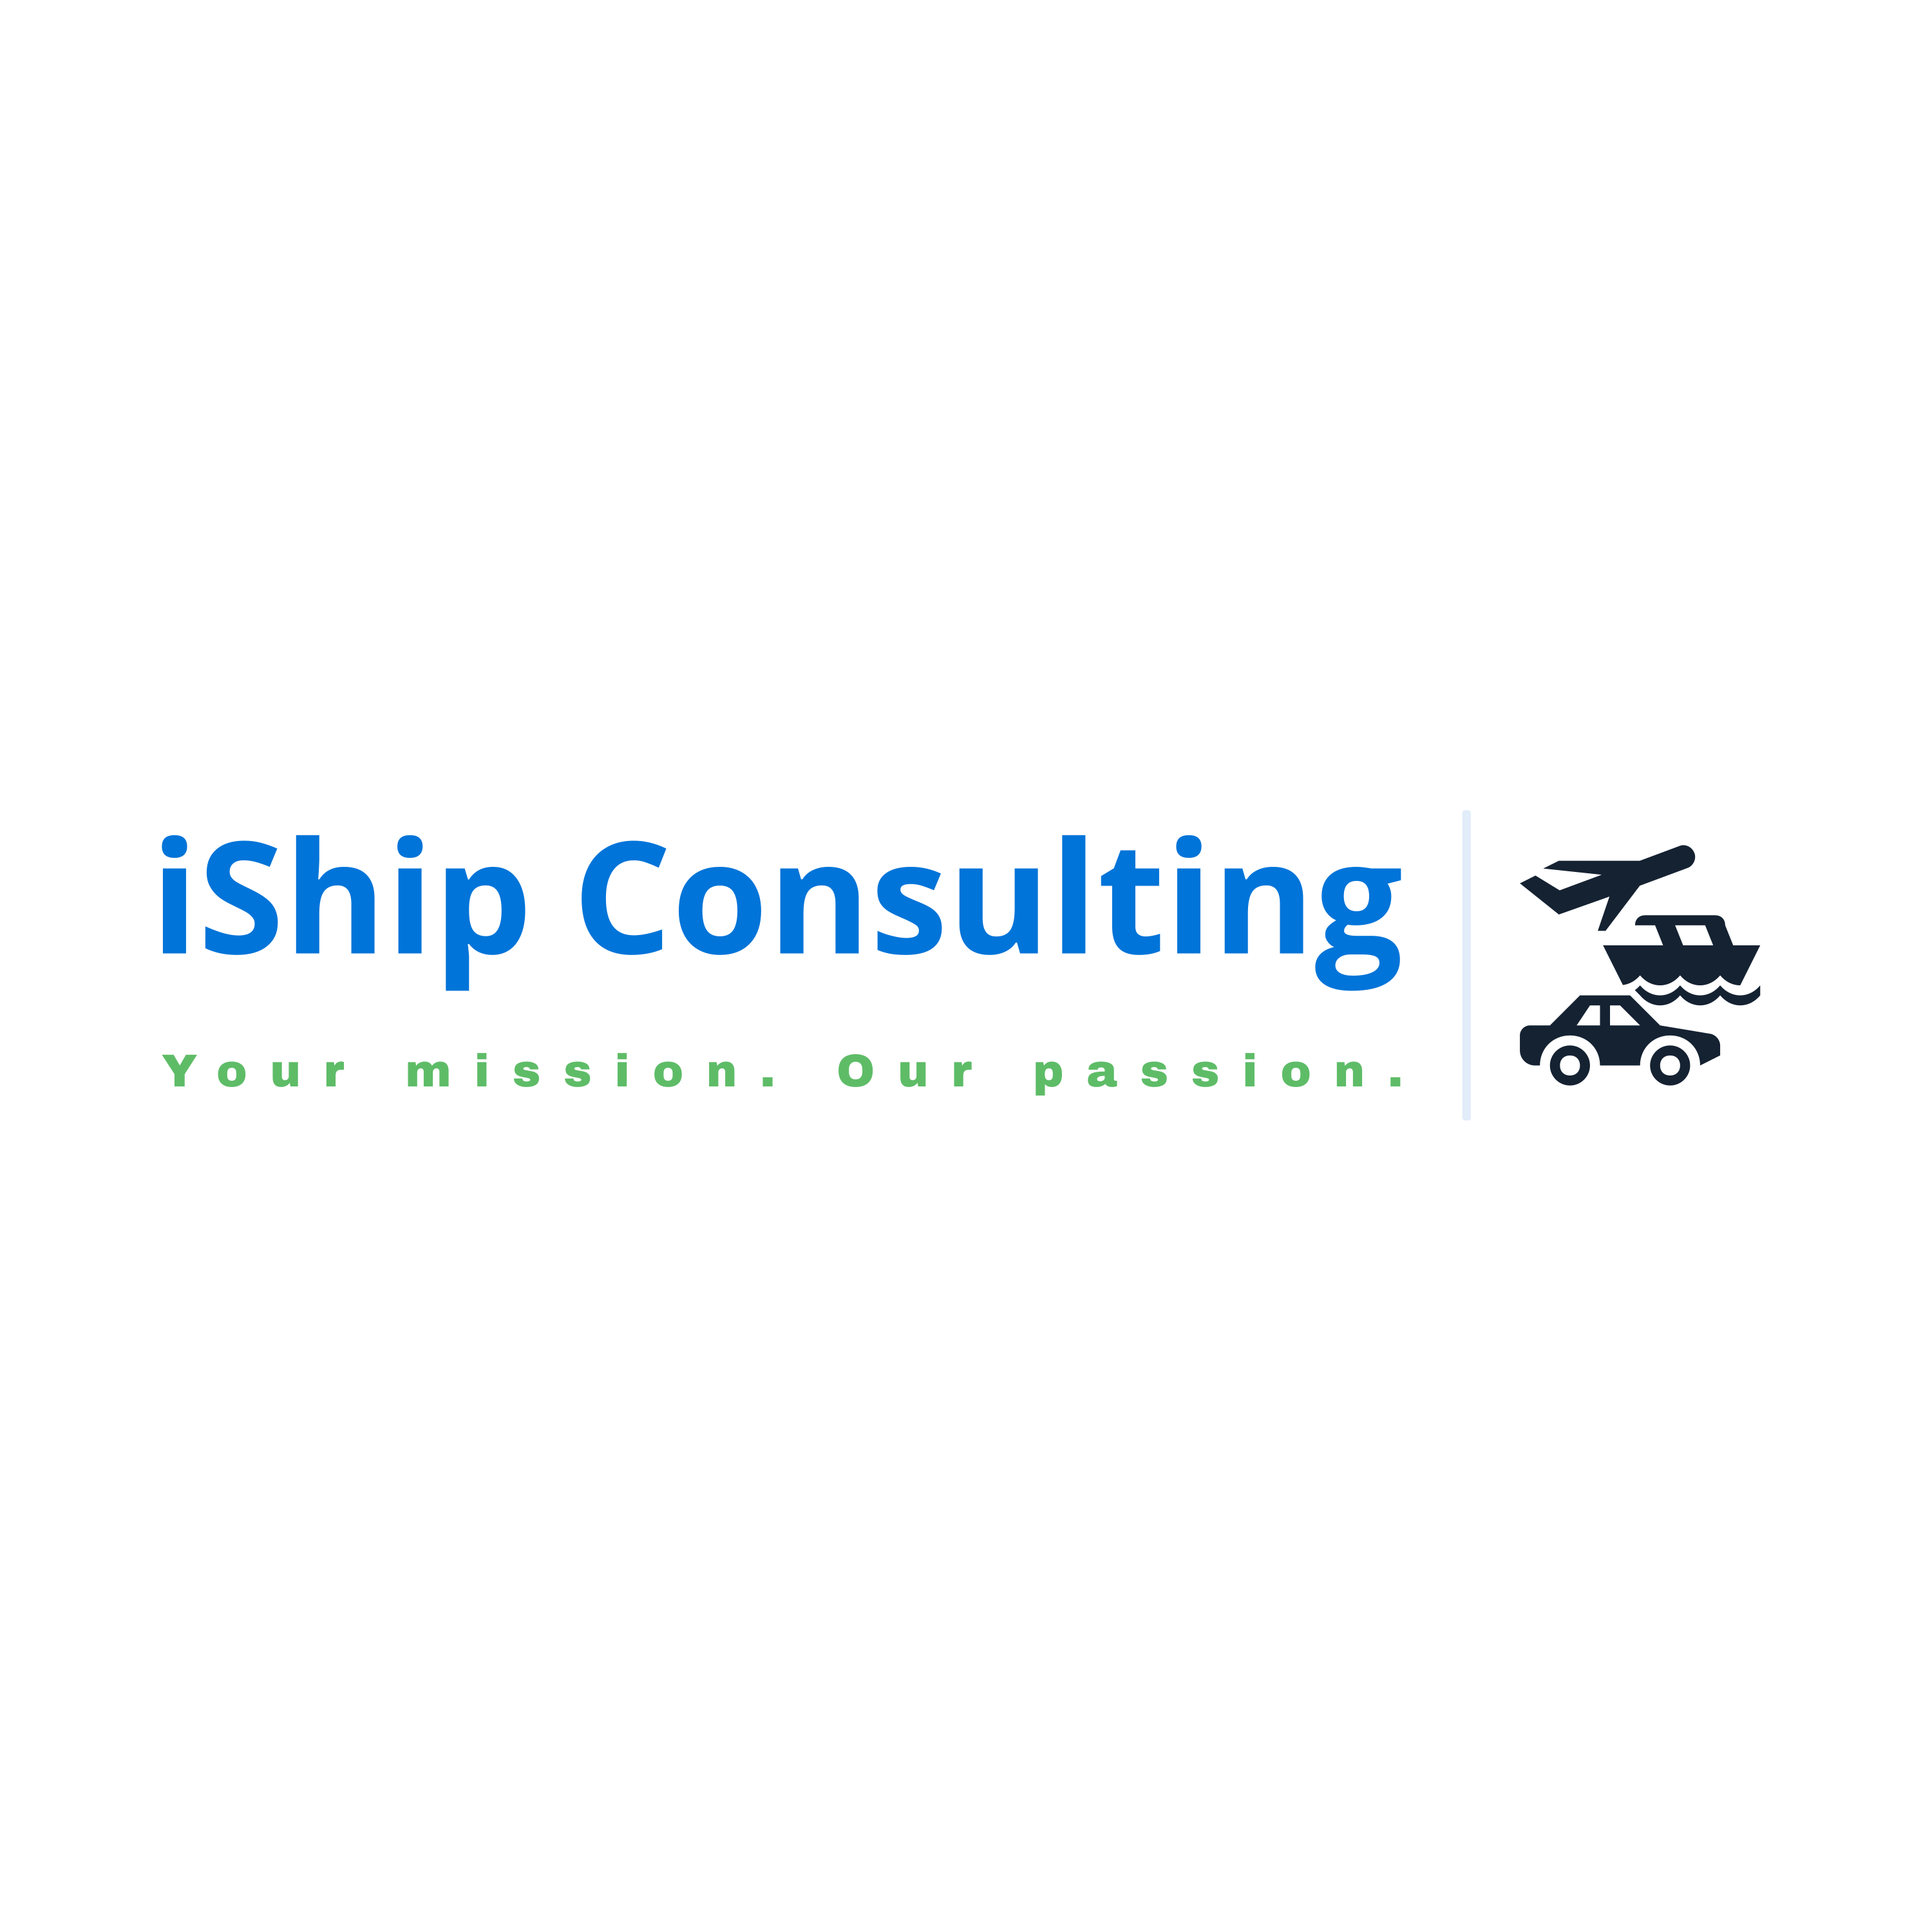 iShip Consulting